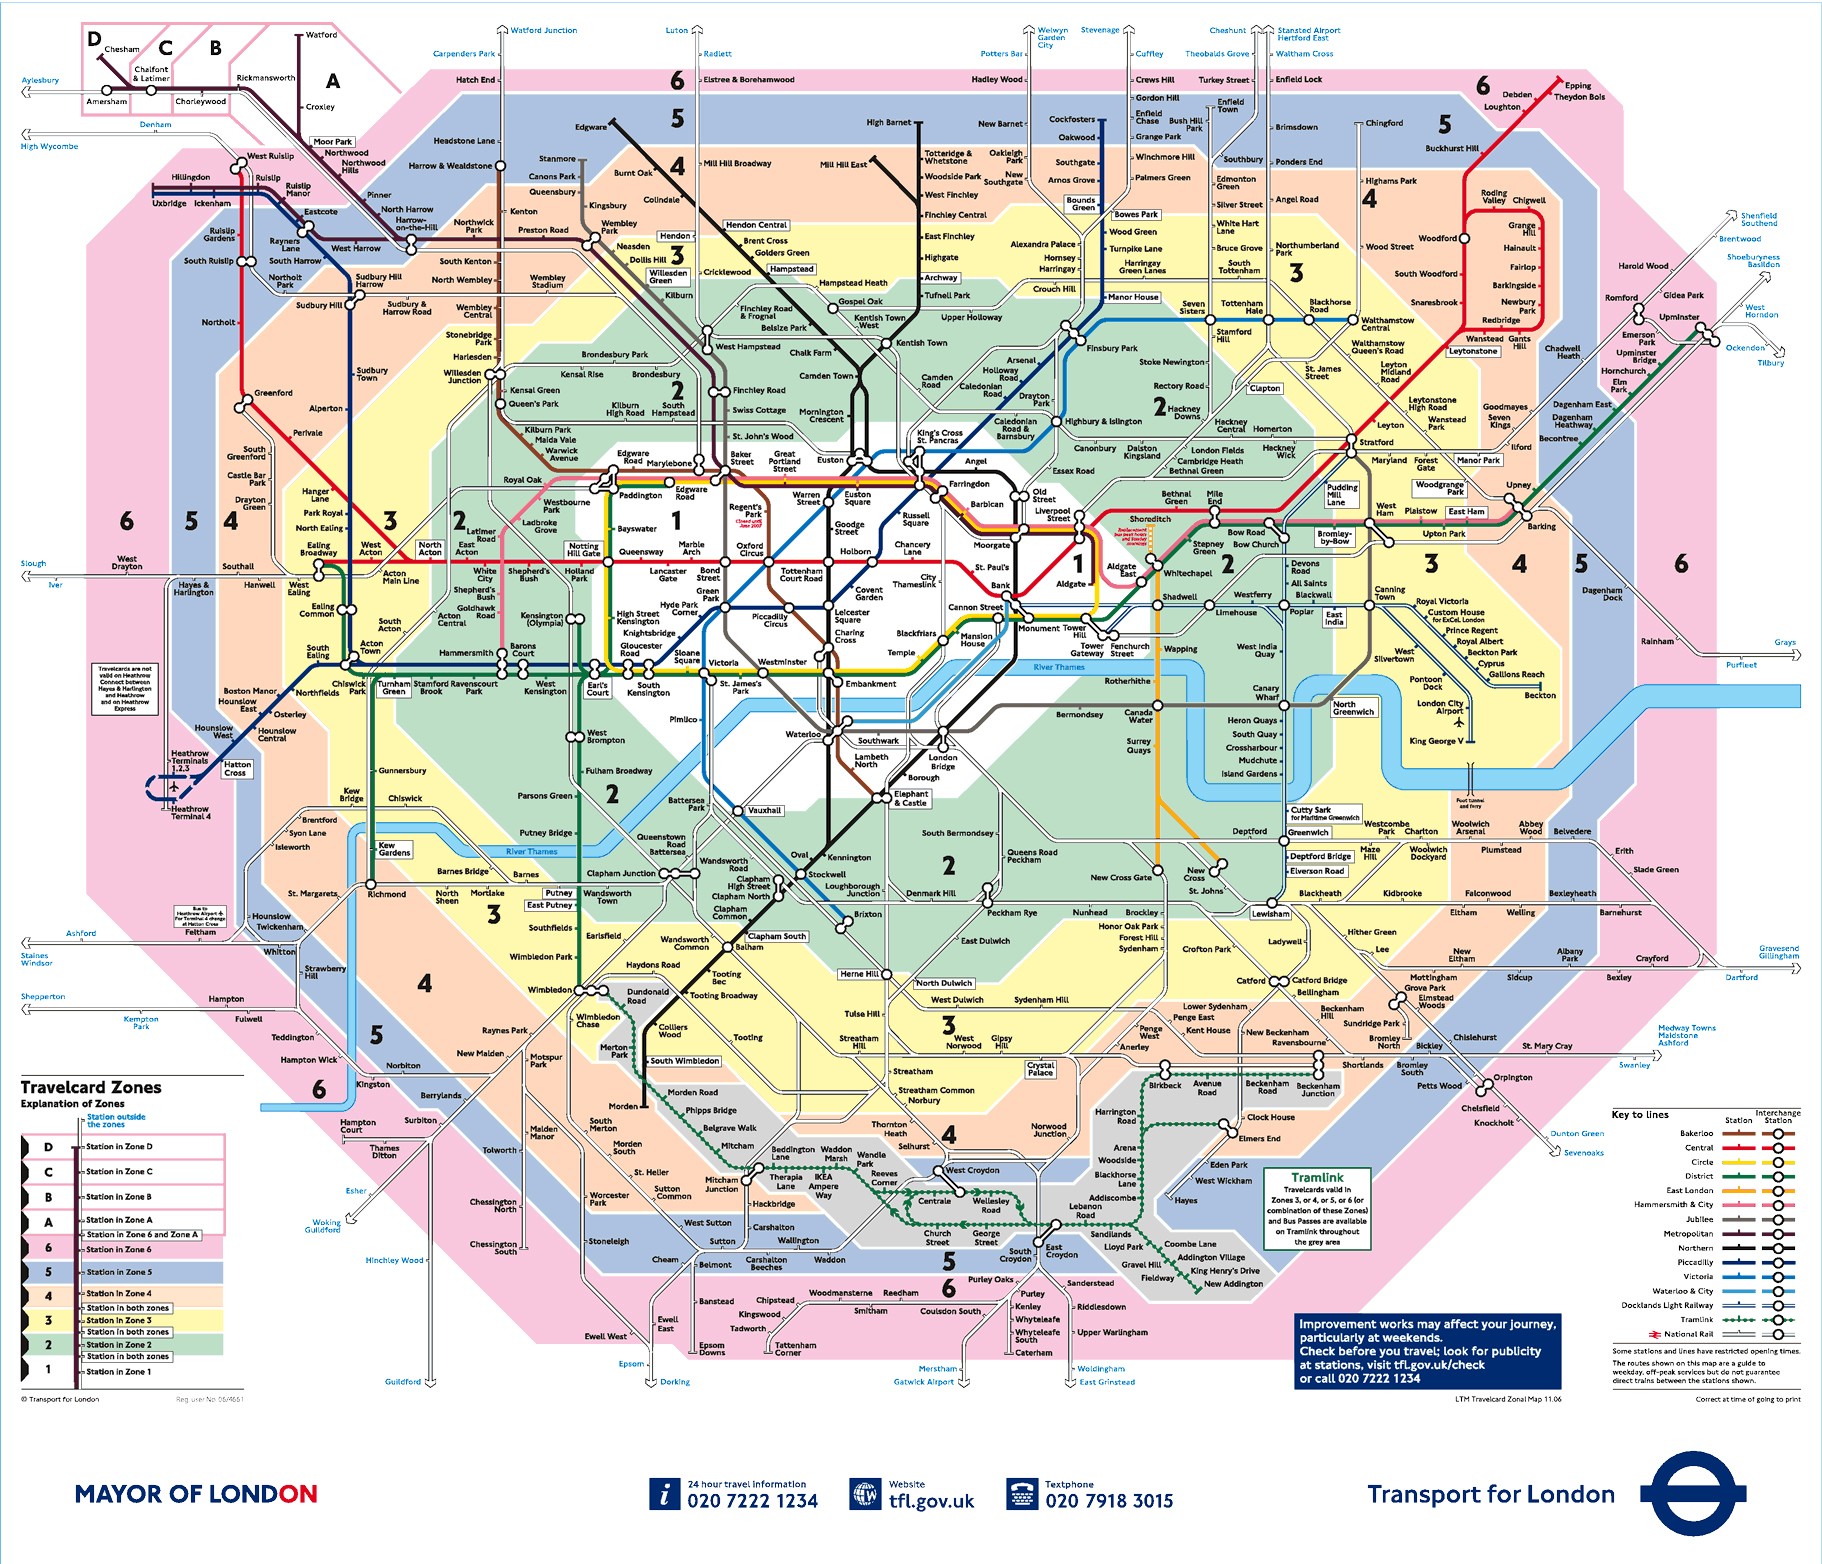 large detailed public transport zones map of london city london city large public transport zones map